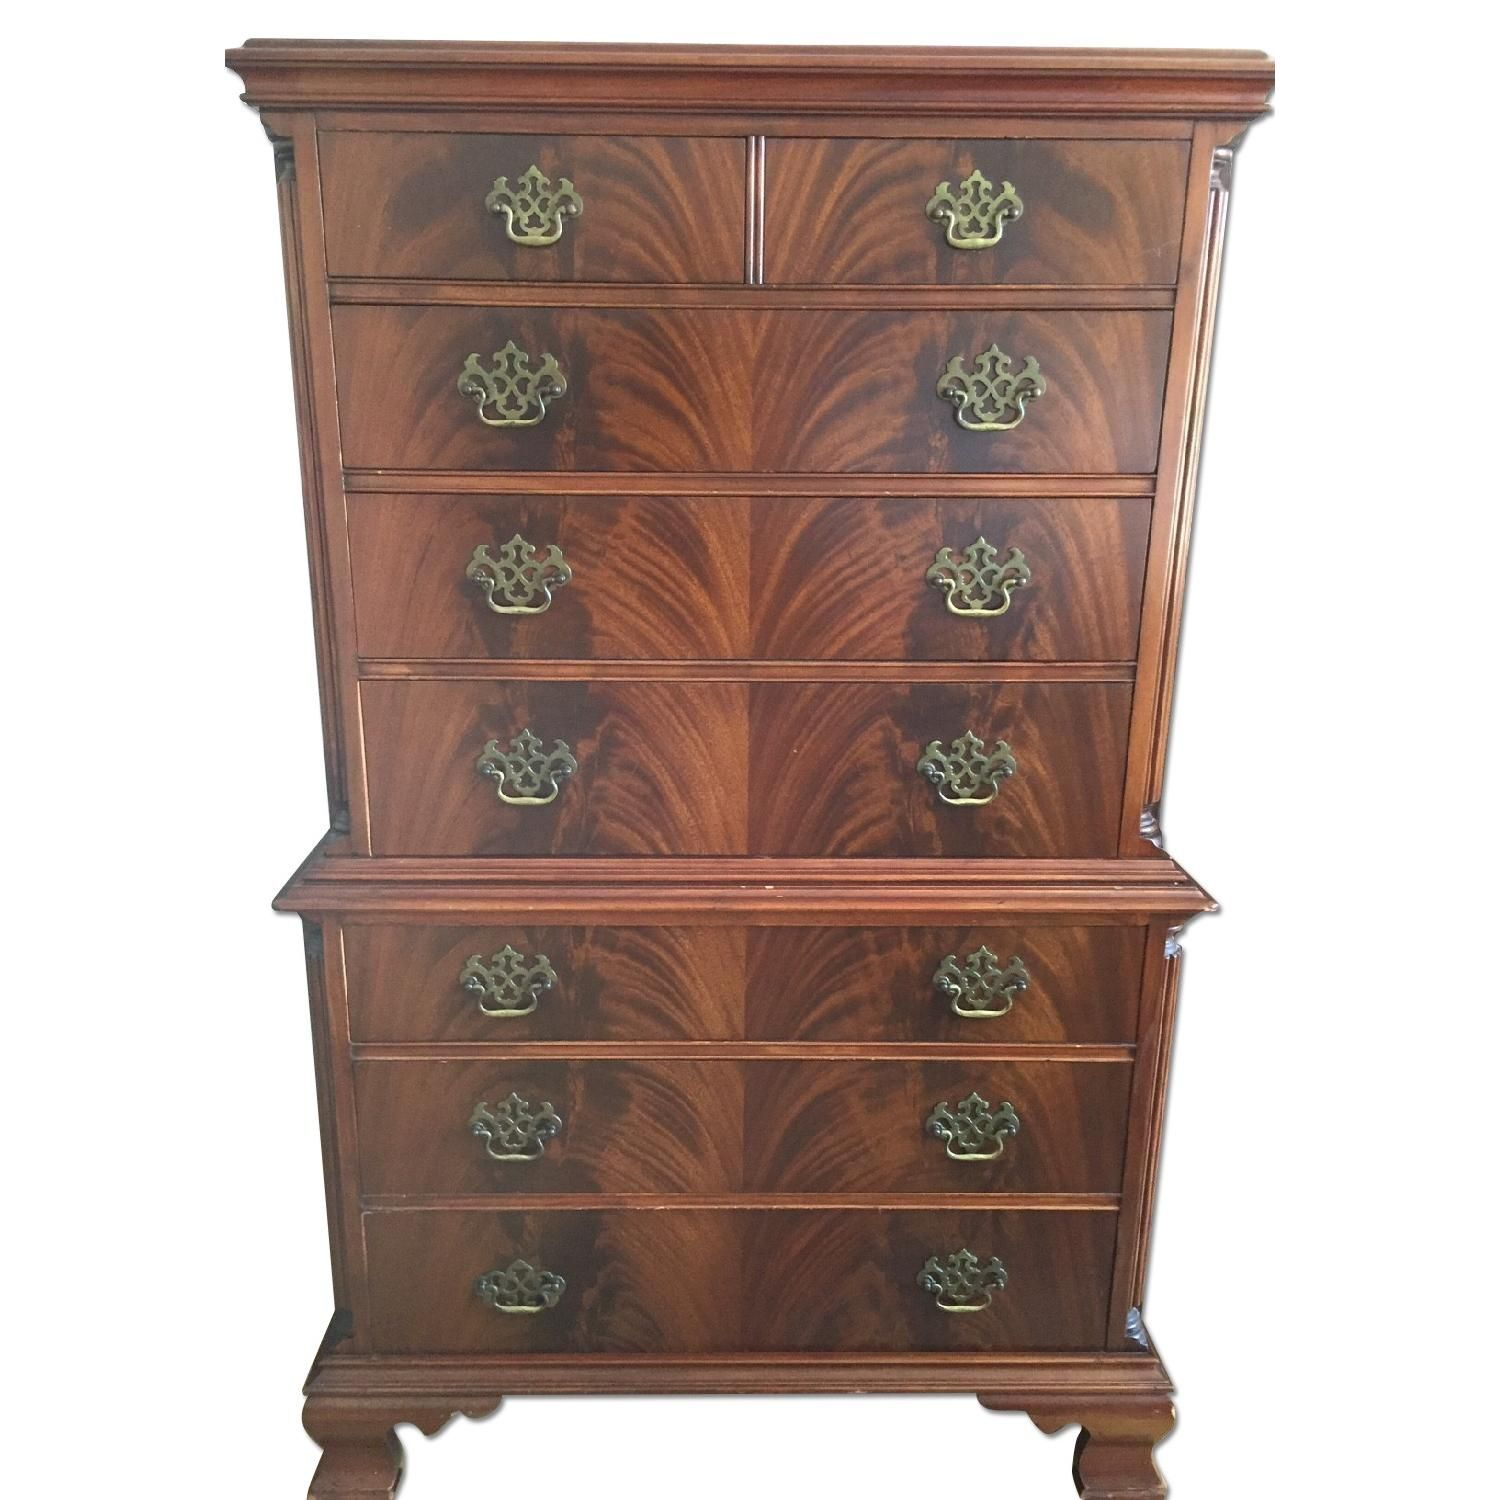 This Is A American Furniture Company Antique 8 Drawer Dresser Inu2026